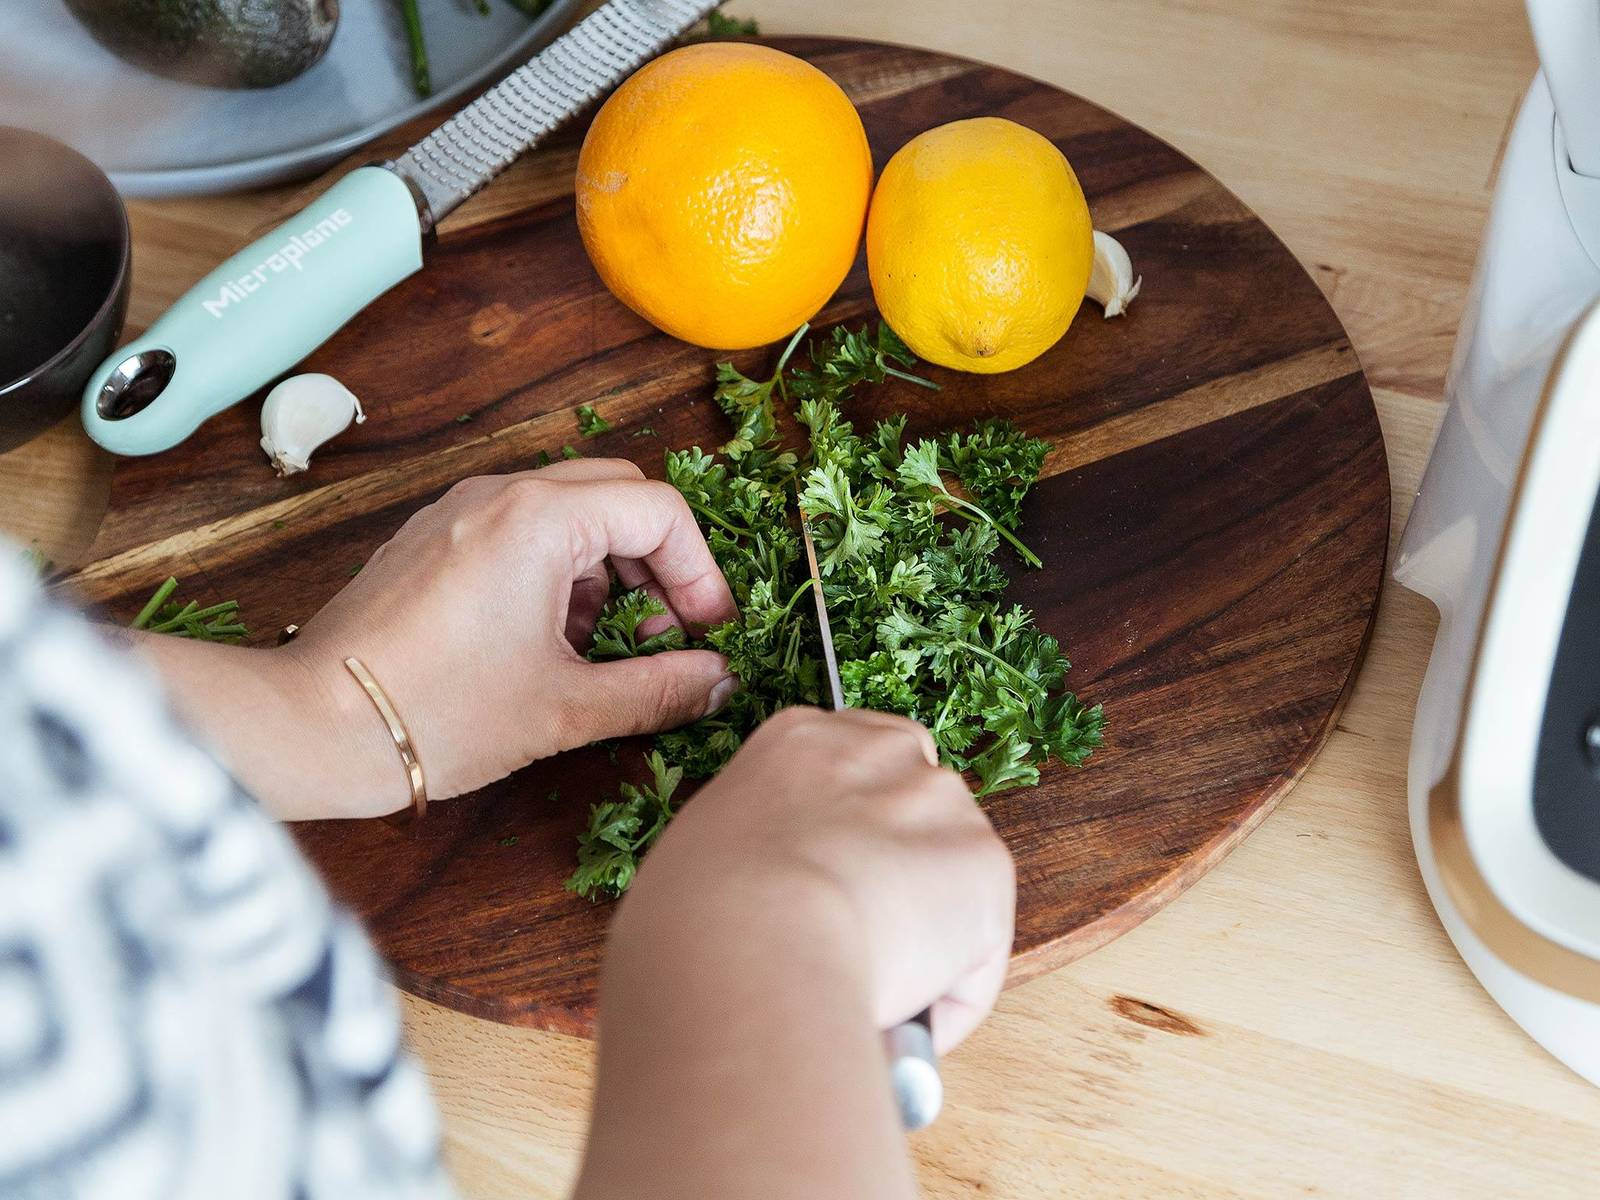 Add universal blade to the bowl of the Prep&Cook. Roughly chop parsley and add it to the bowl. Peel and cut some of the garlic into chunks. Add garlic, orange zest, lemon zest to the bowl and blend for 30 sec. on level 11. Transfer gremolata to a serving bowl and set aside.